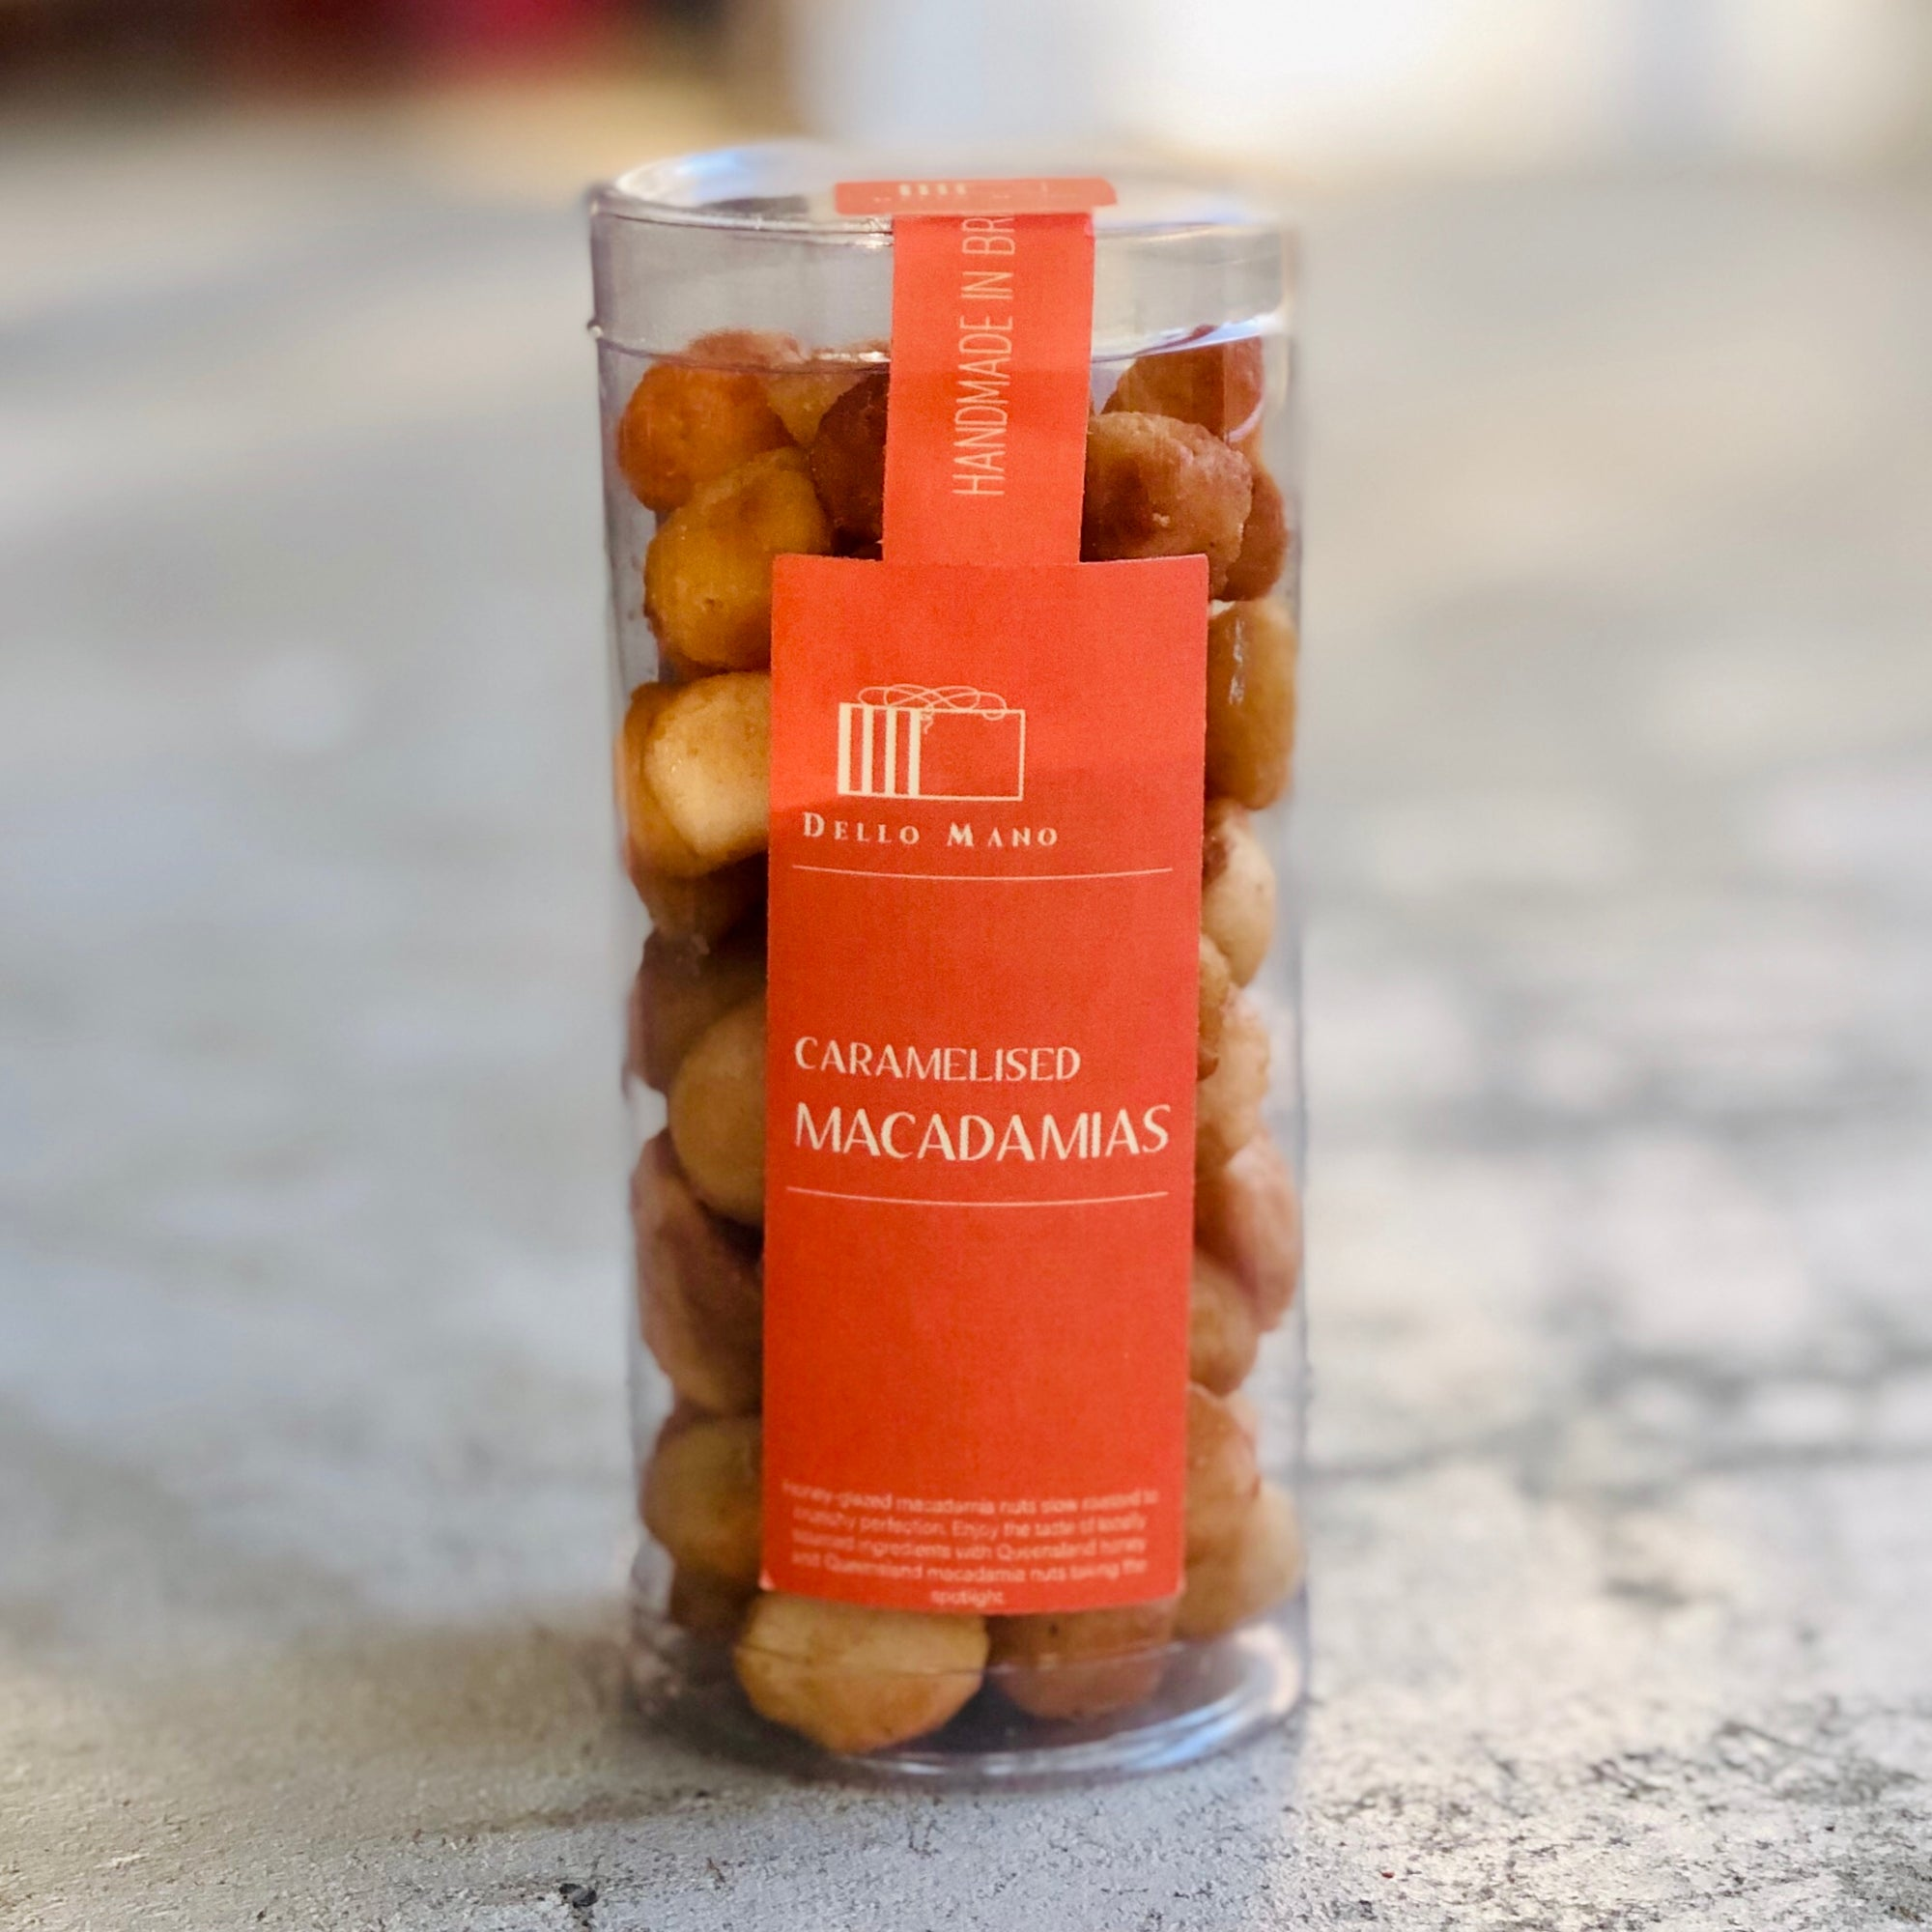 A tube of Honey Caramelised roasted Macadamias with orange label